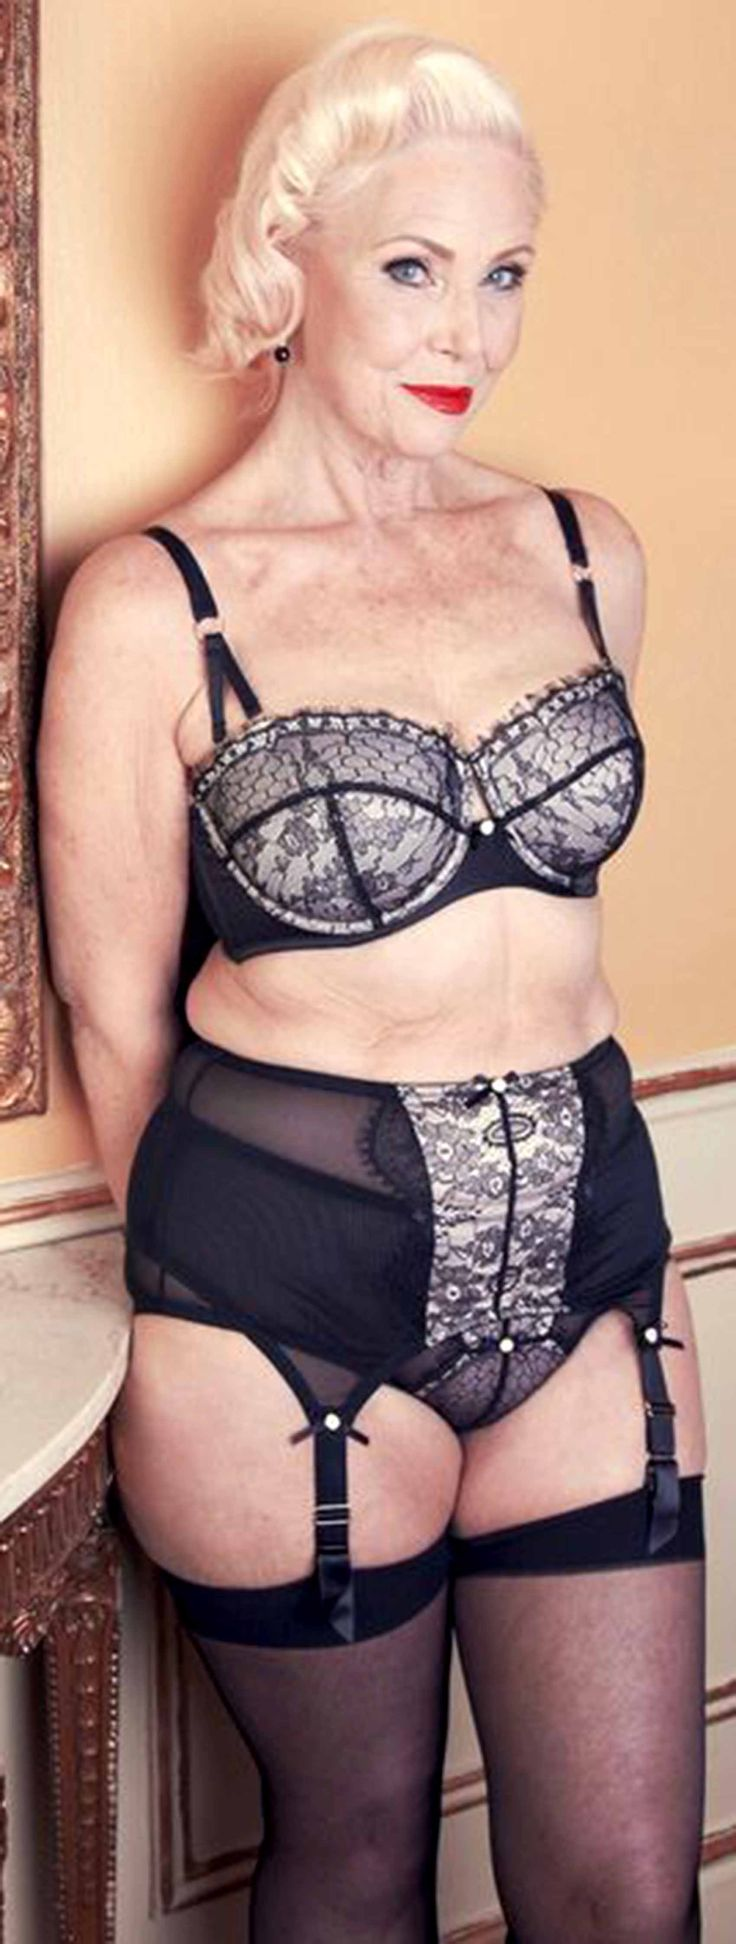 Older Women In Lingerie Pics